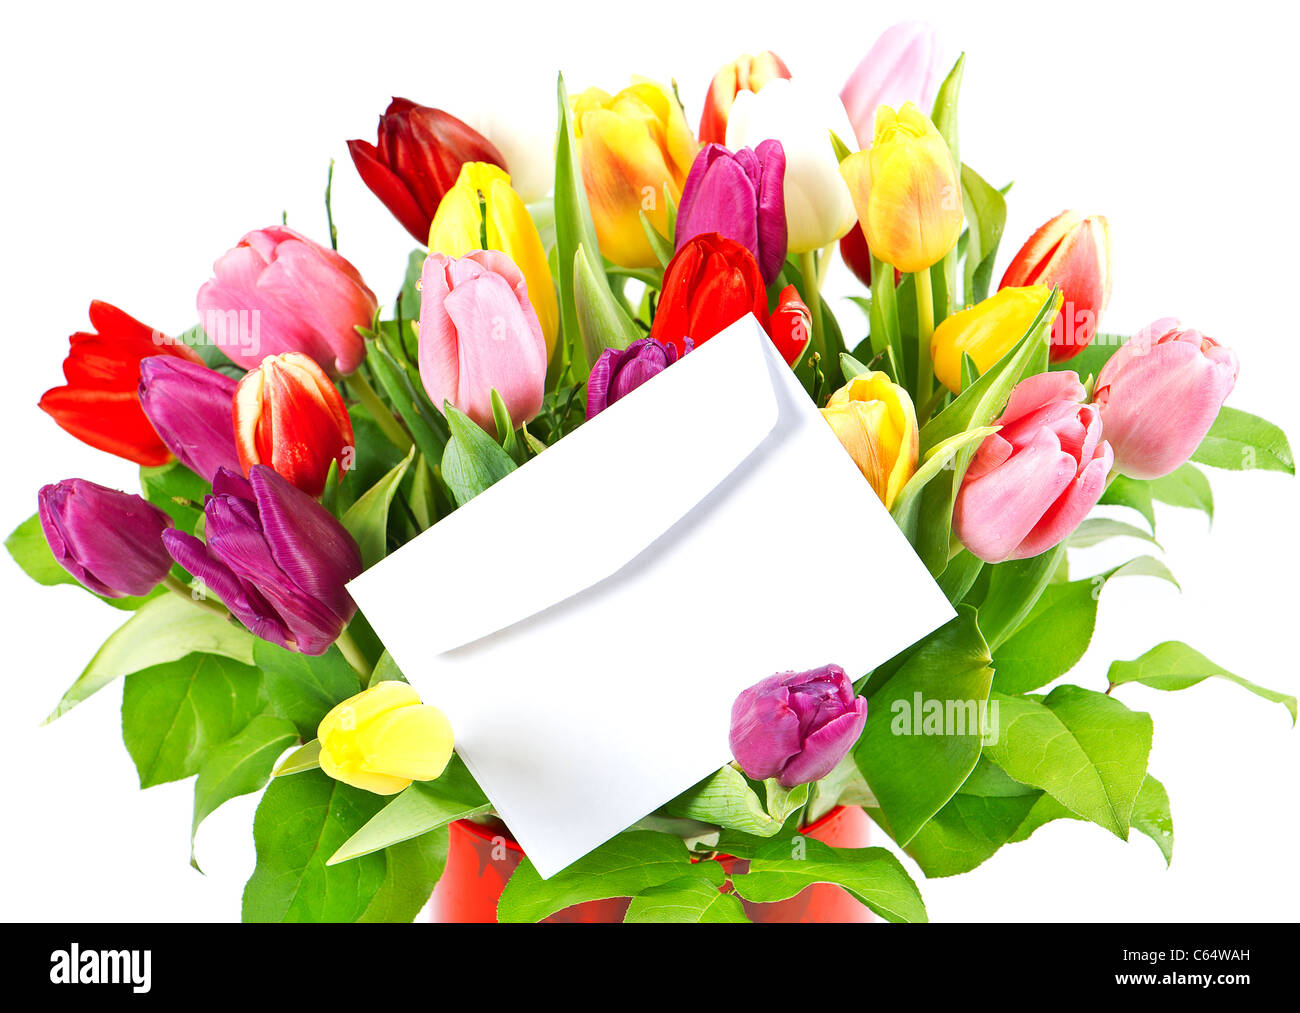 Floral gif stock photos floral gif stock images alamy colorful bouquet of fresh tulips with white card stock image izmirmasajfo